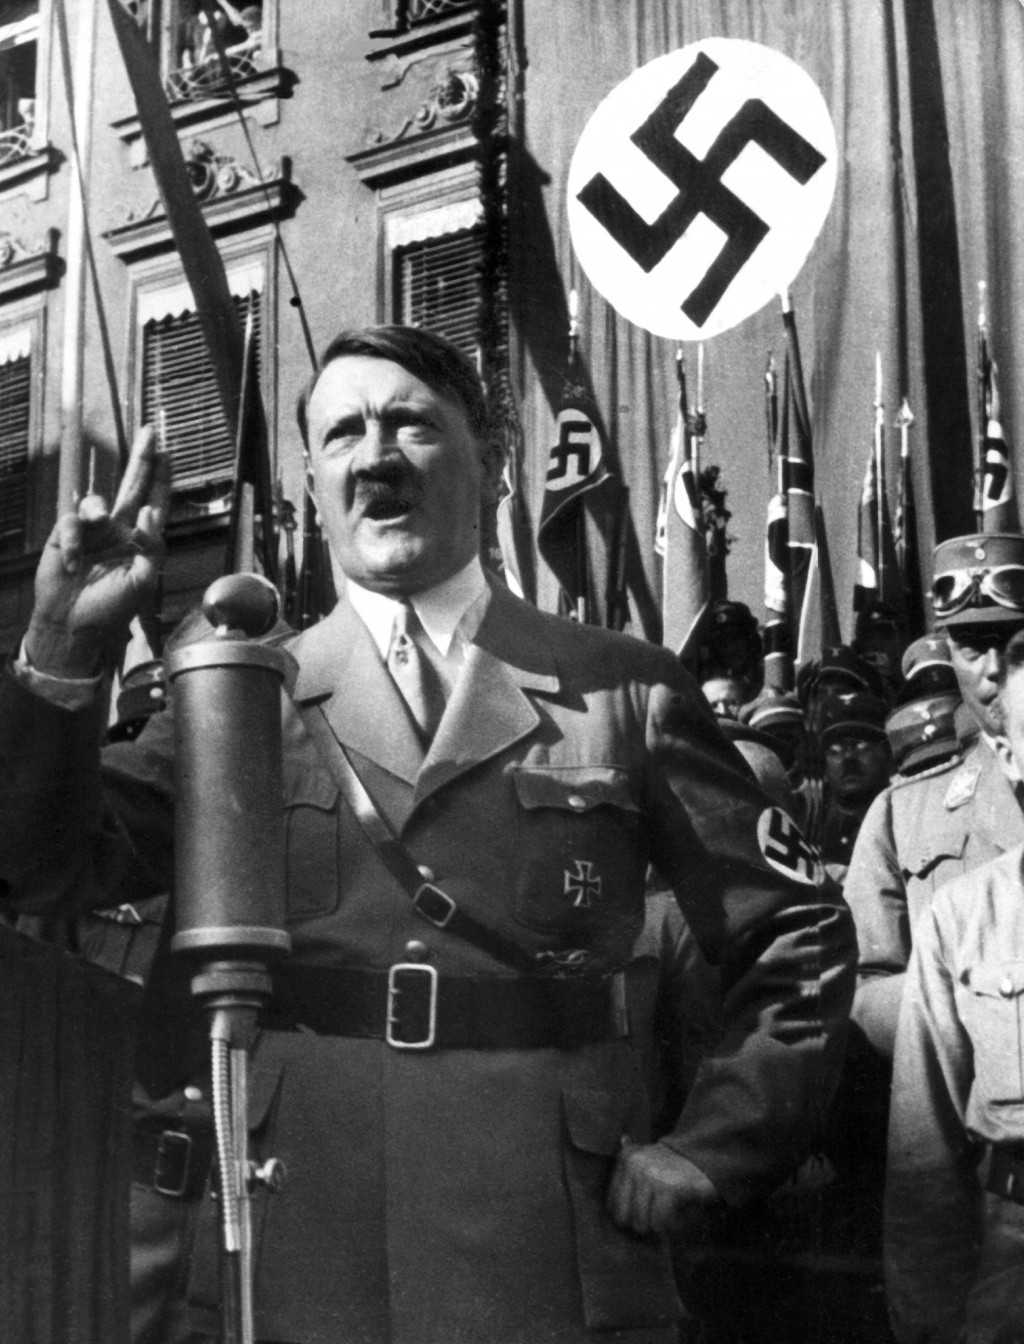 FILE - An undated file picture shows the leader of the National Socialists Adolf Hitler, gesturing during a speech. A prominent European Jewish organi...